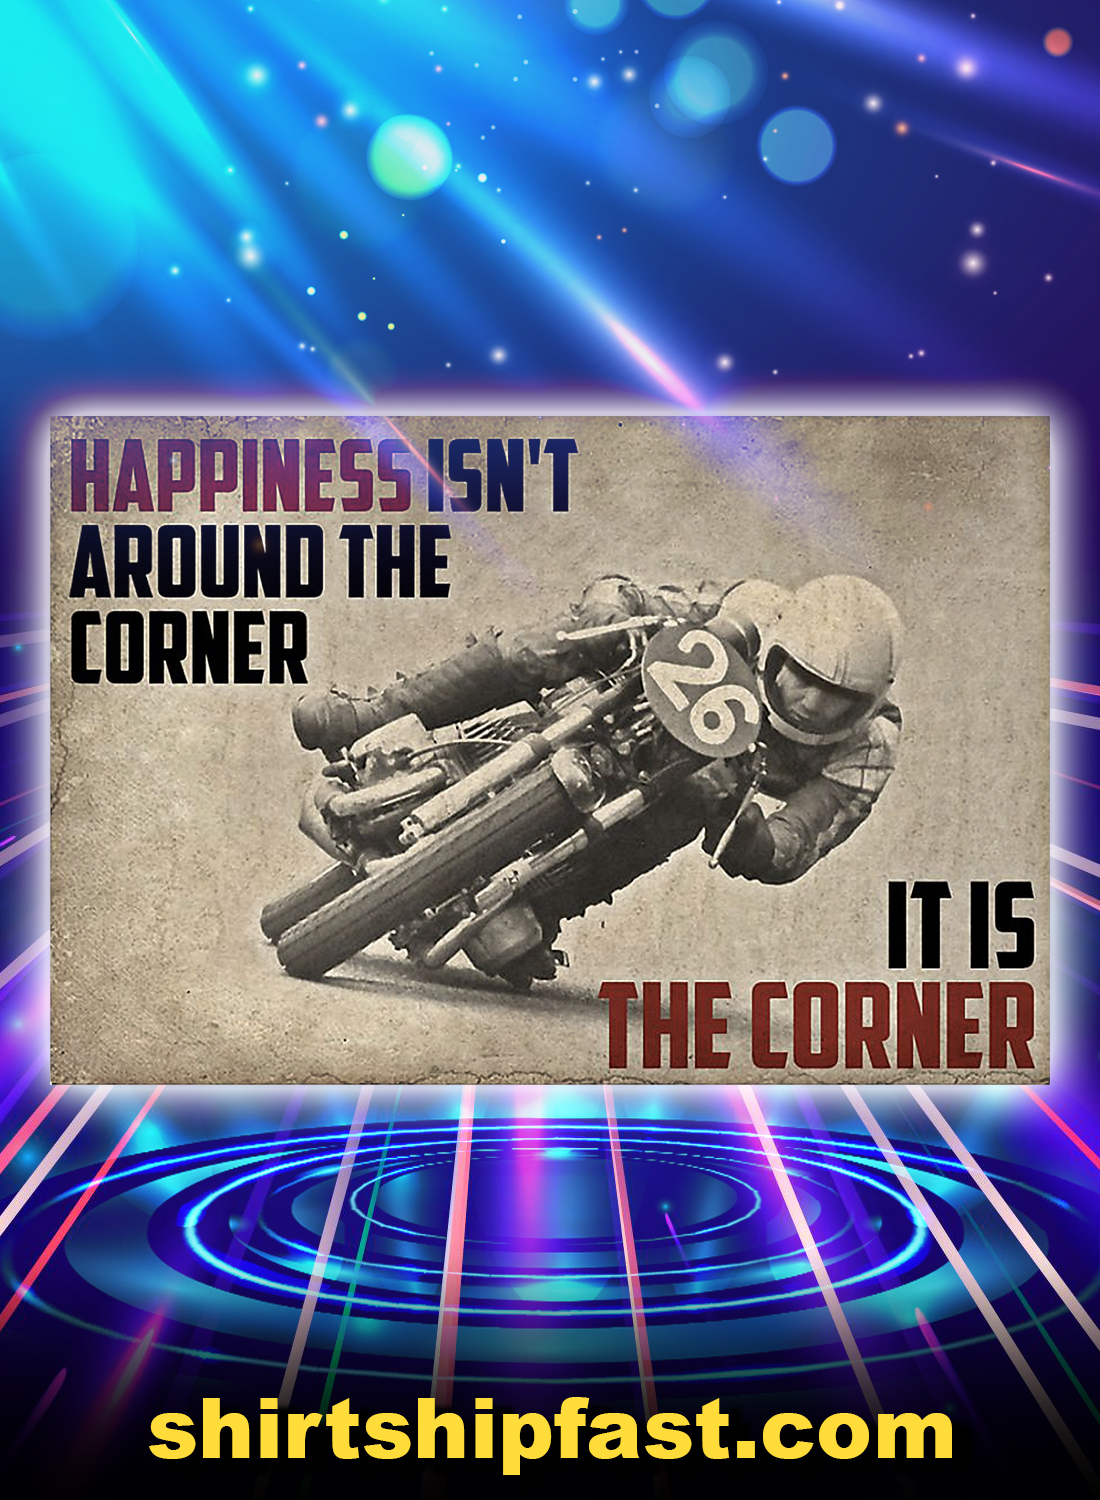 Poster Motorcycle happiness isn't around the corner - A4